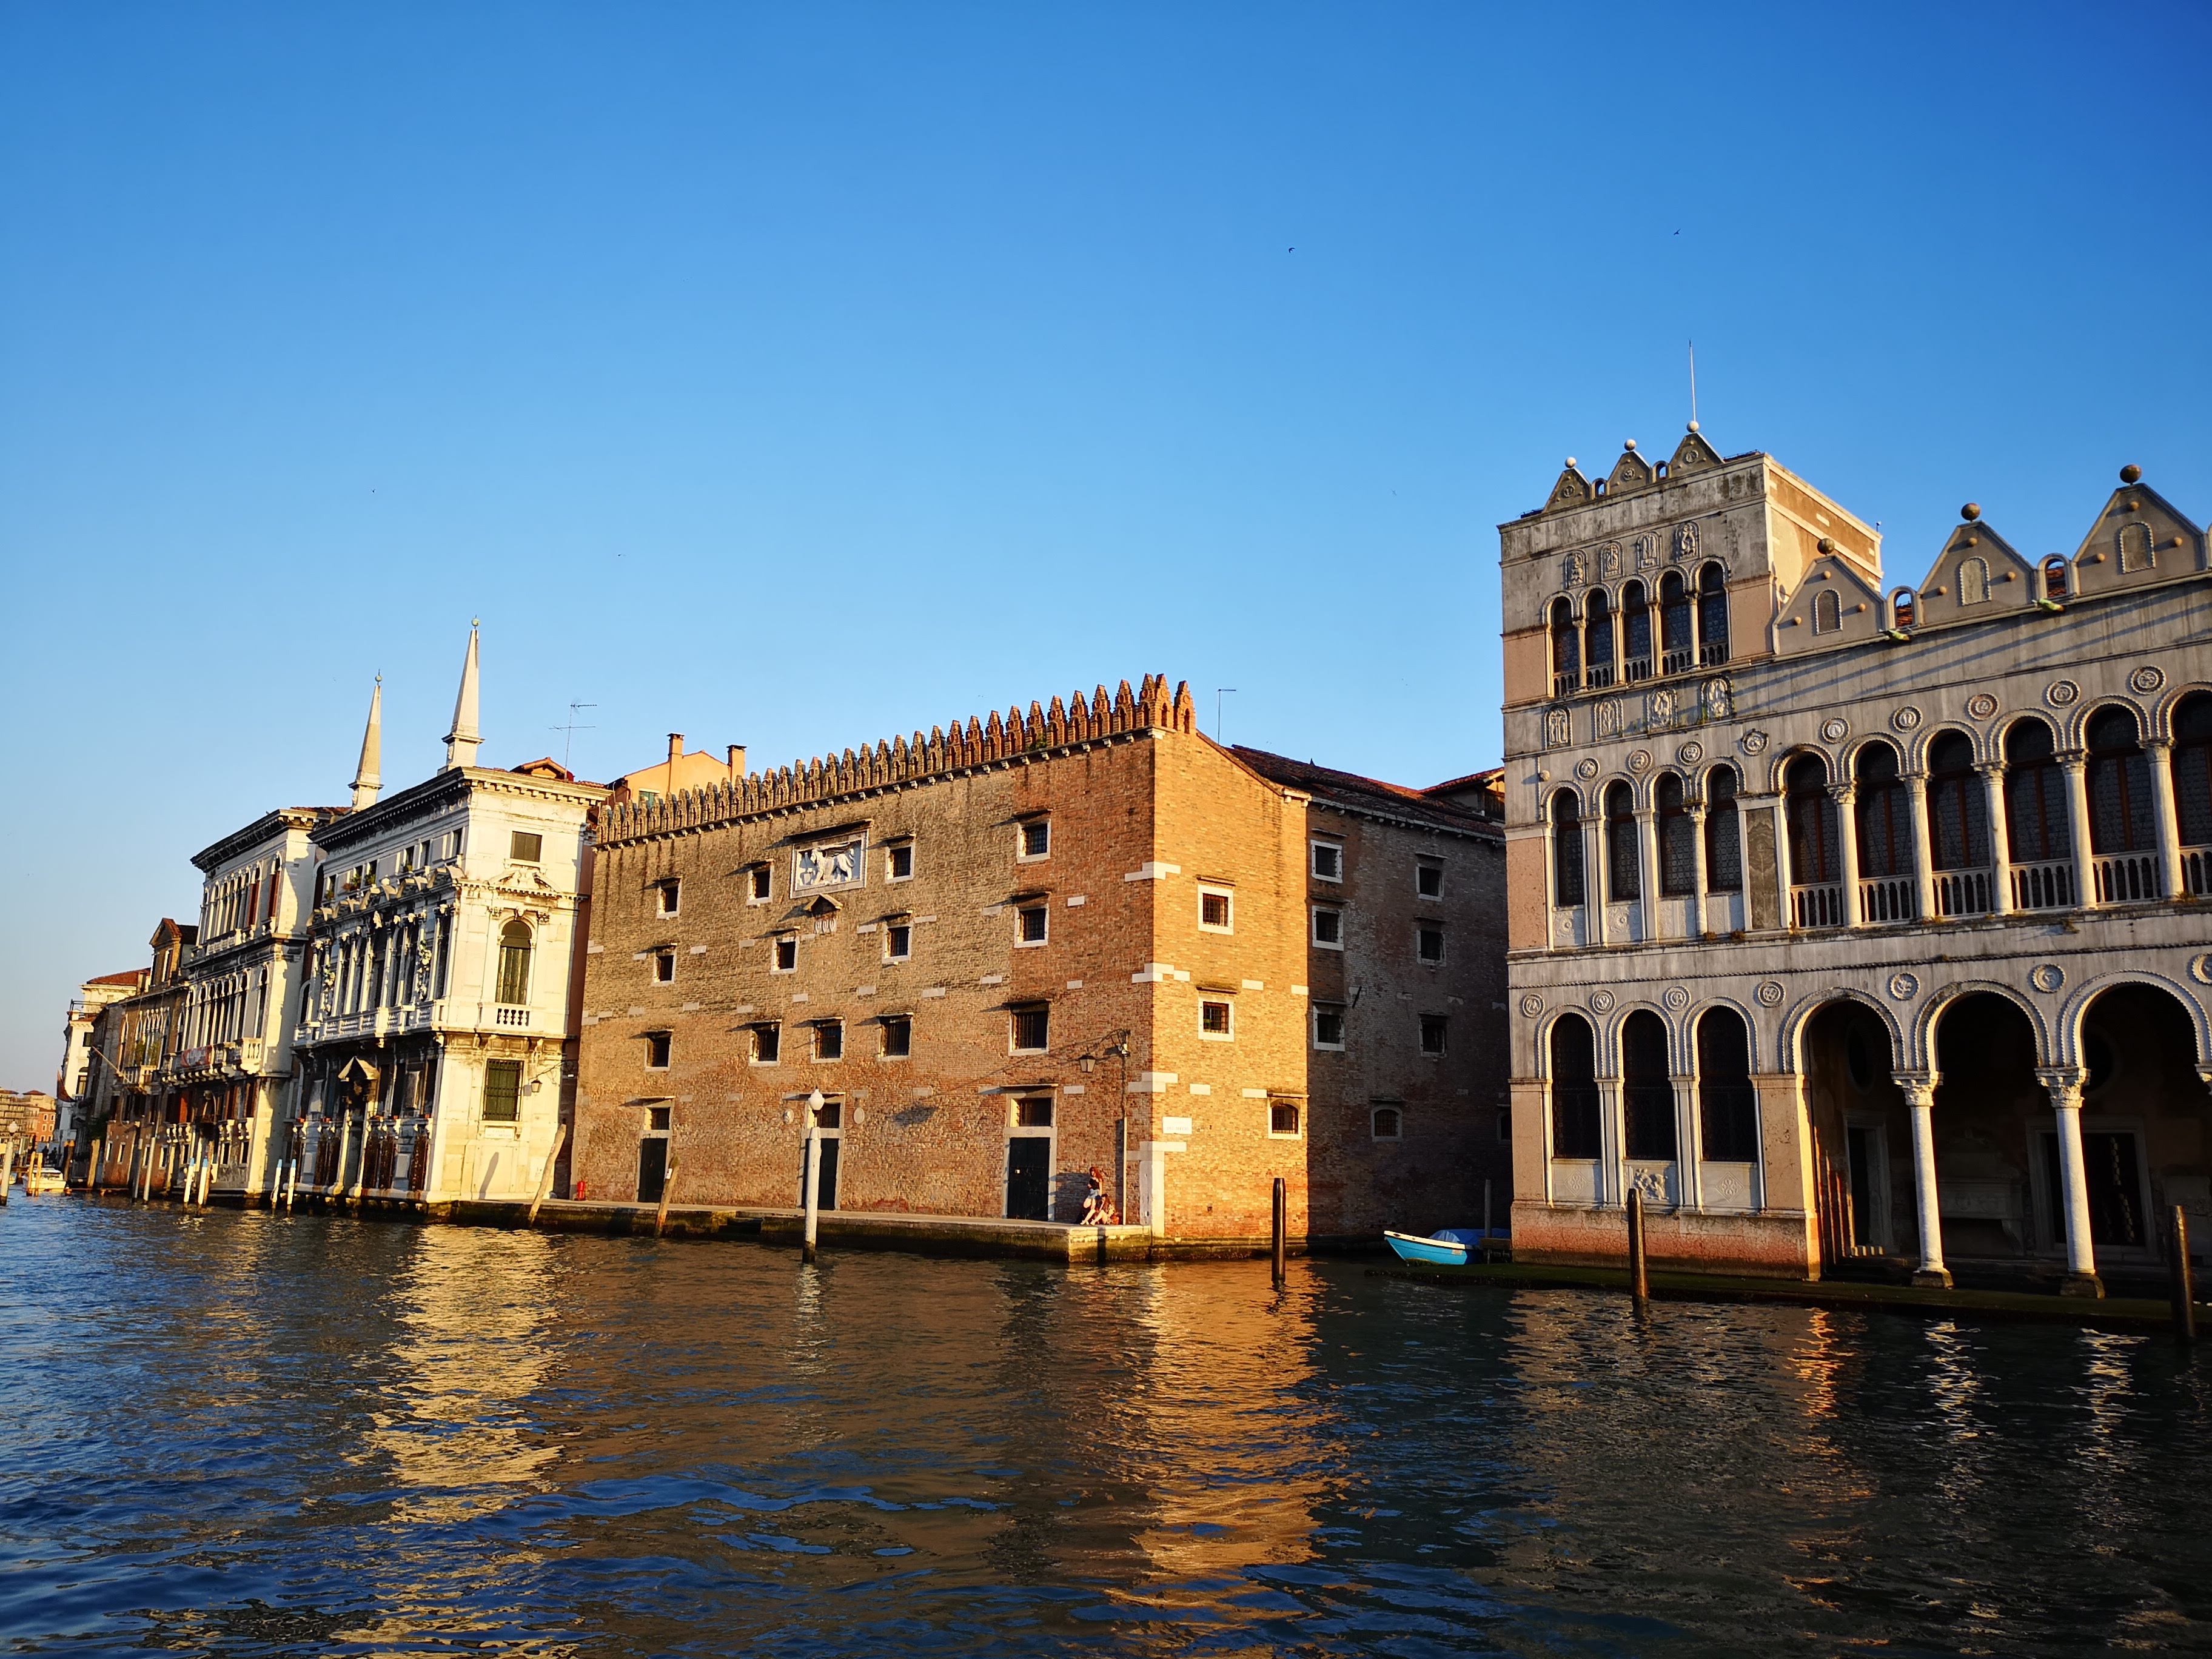 Venice: An Addiction that Cannot Be Cured - Monica Cesarato